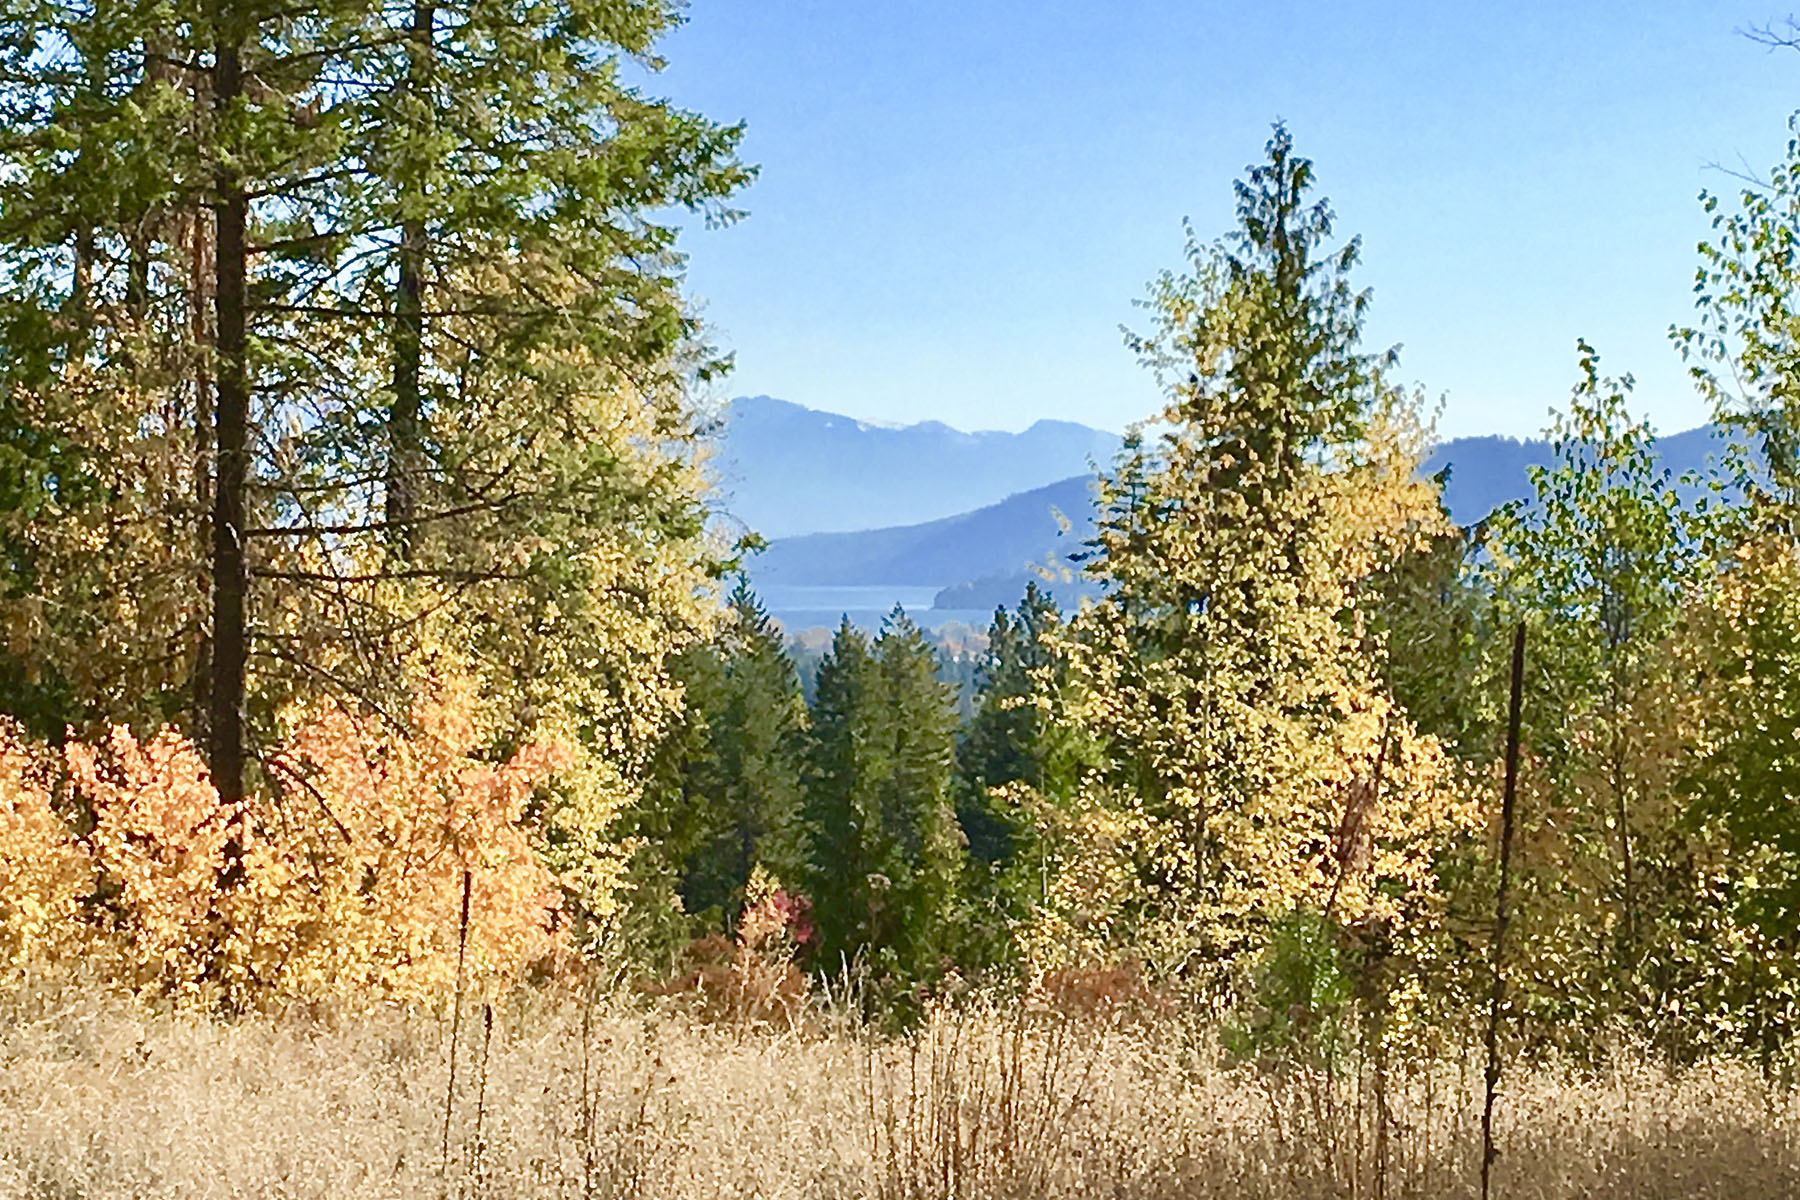 Land for Sale at Build Your Dream on Over an Acre With Views 44 Mariposa Ct Sandpoint, Idaho 83864 United States